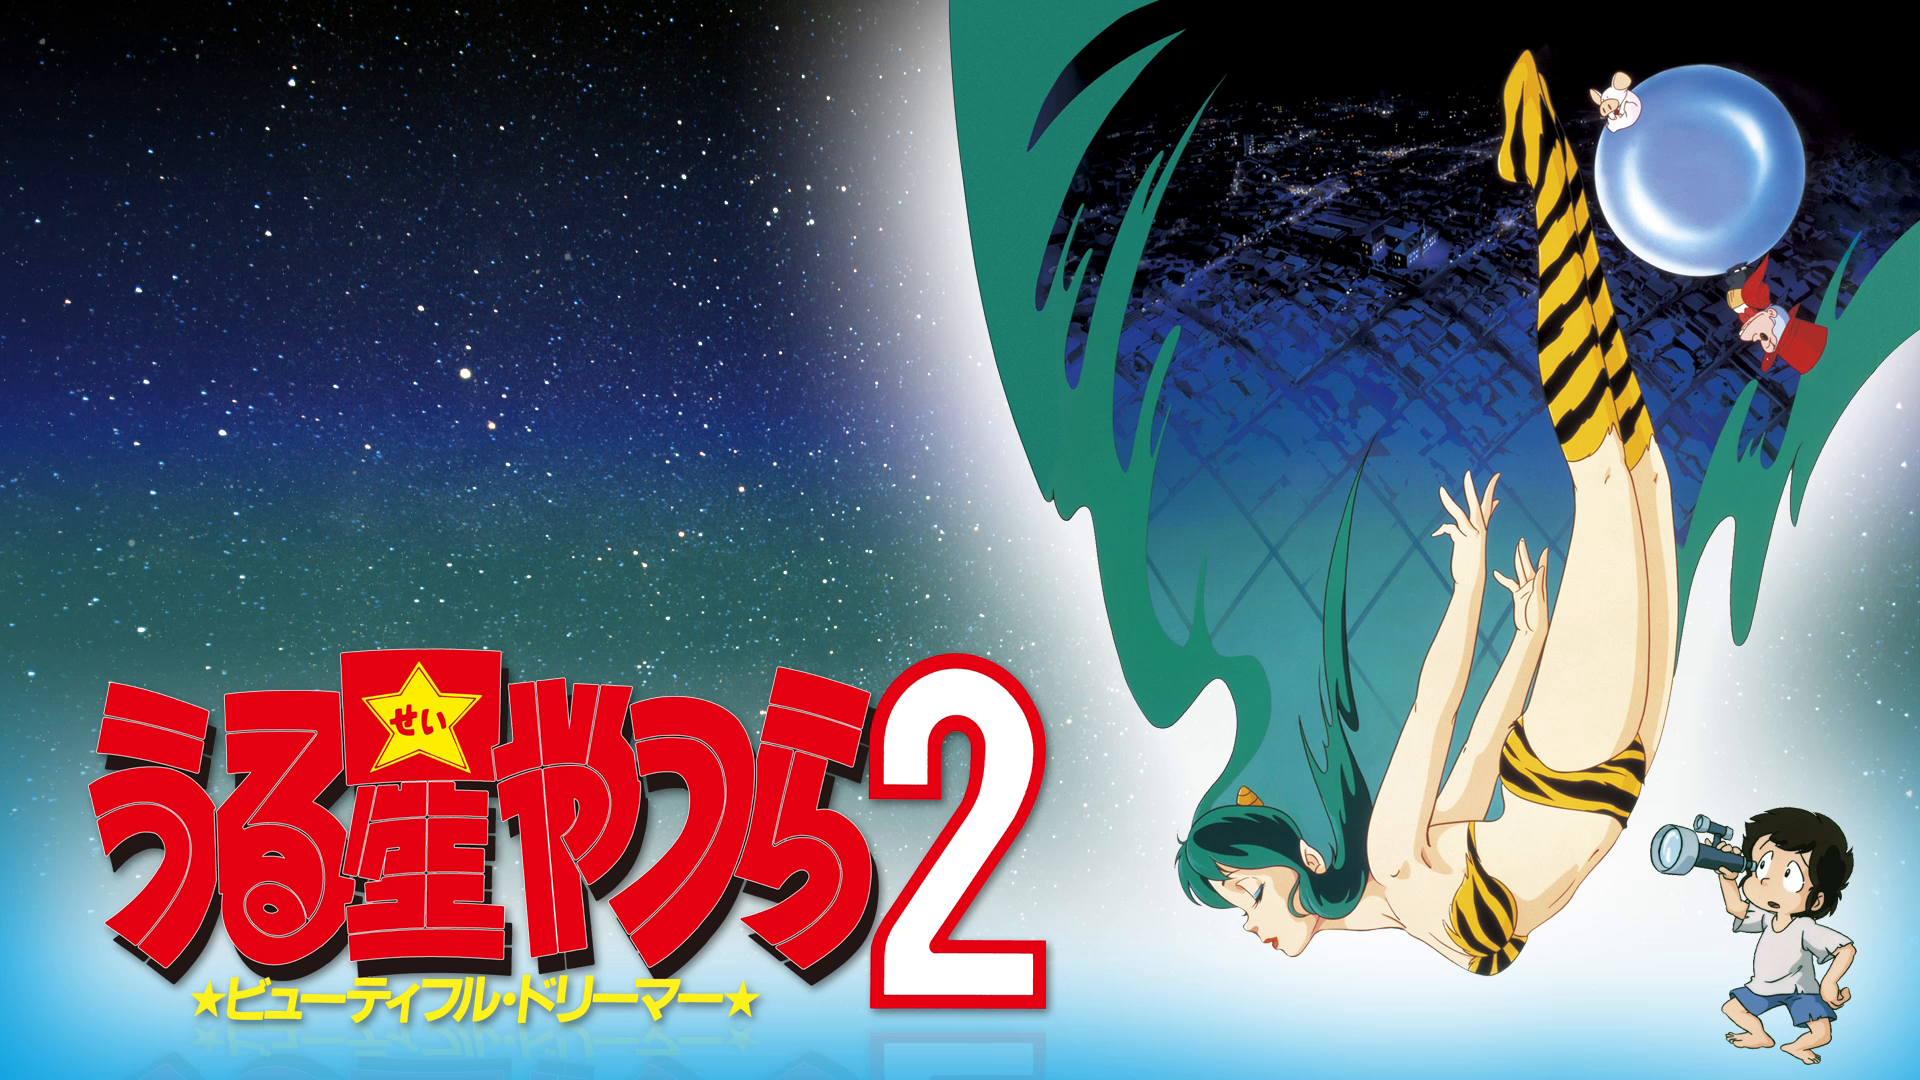 Urusei Yatsura Beatiful Dreamer Hd Wallpaper By Uruseiyatsurax On Deviantart